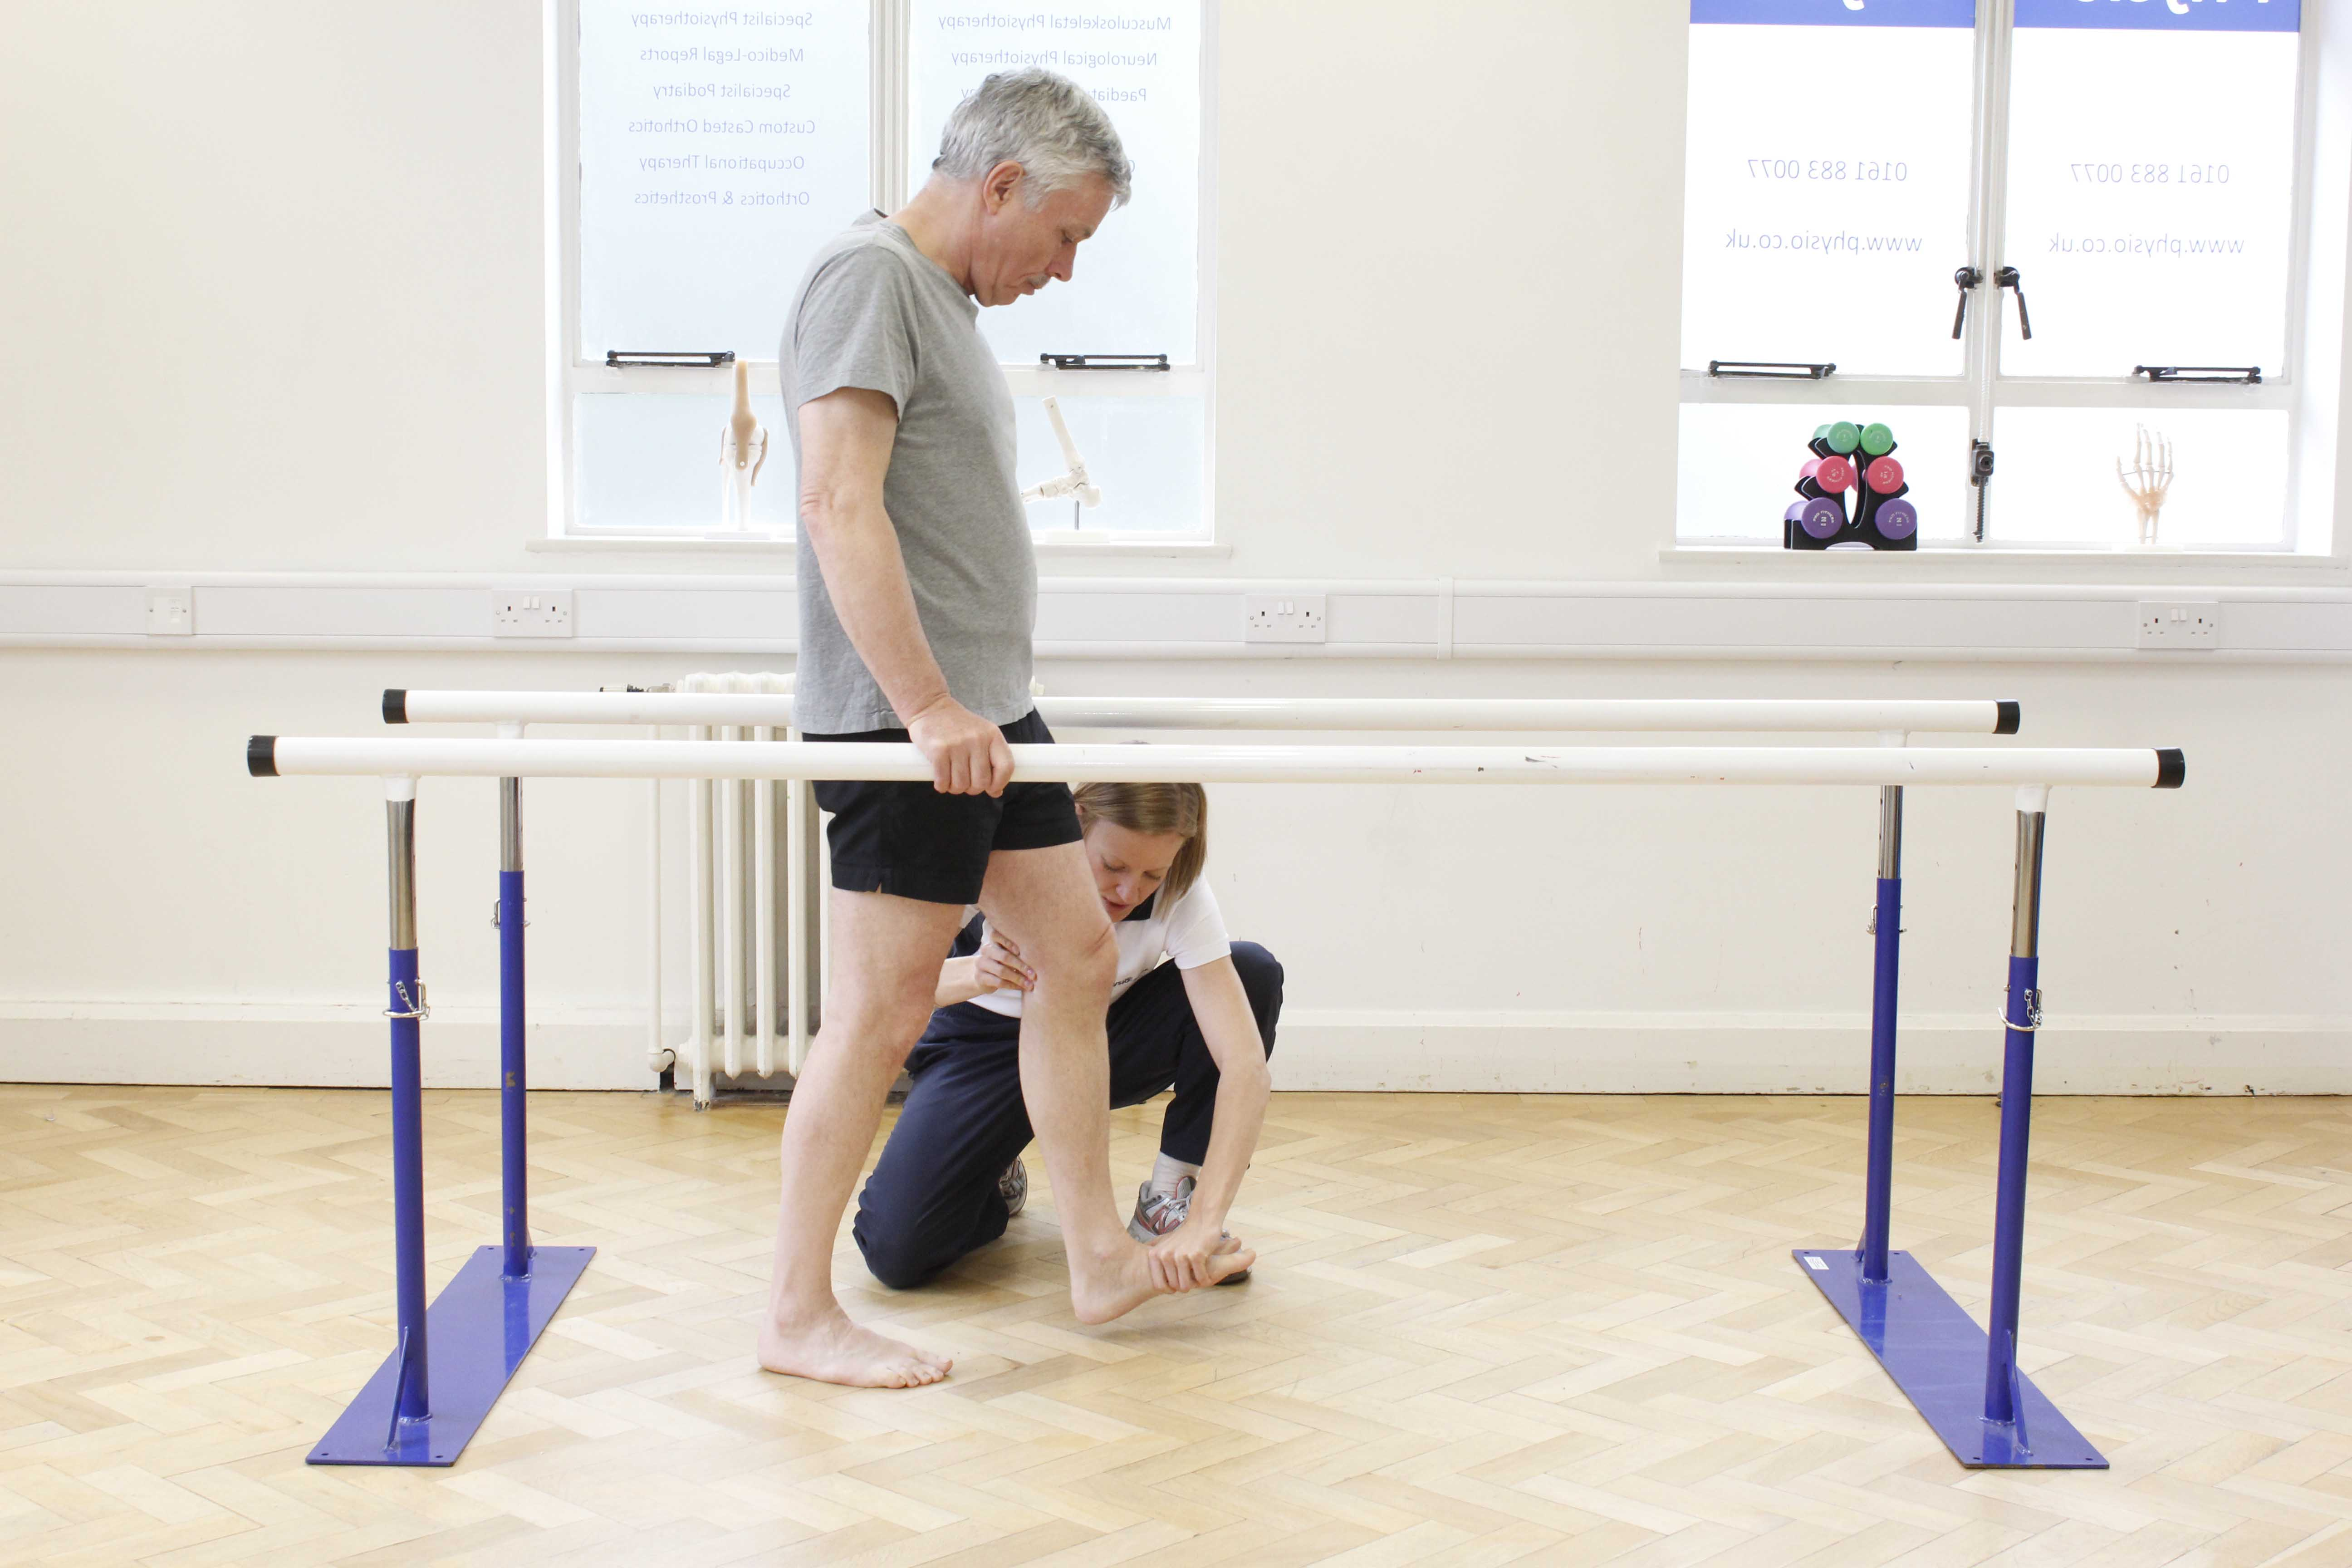 Gait re-education exercises closely supervised by a specialist neurological physiotherapist